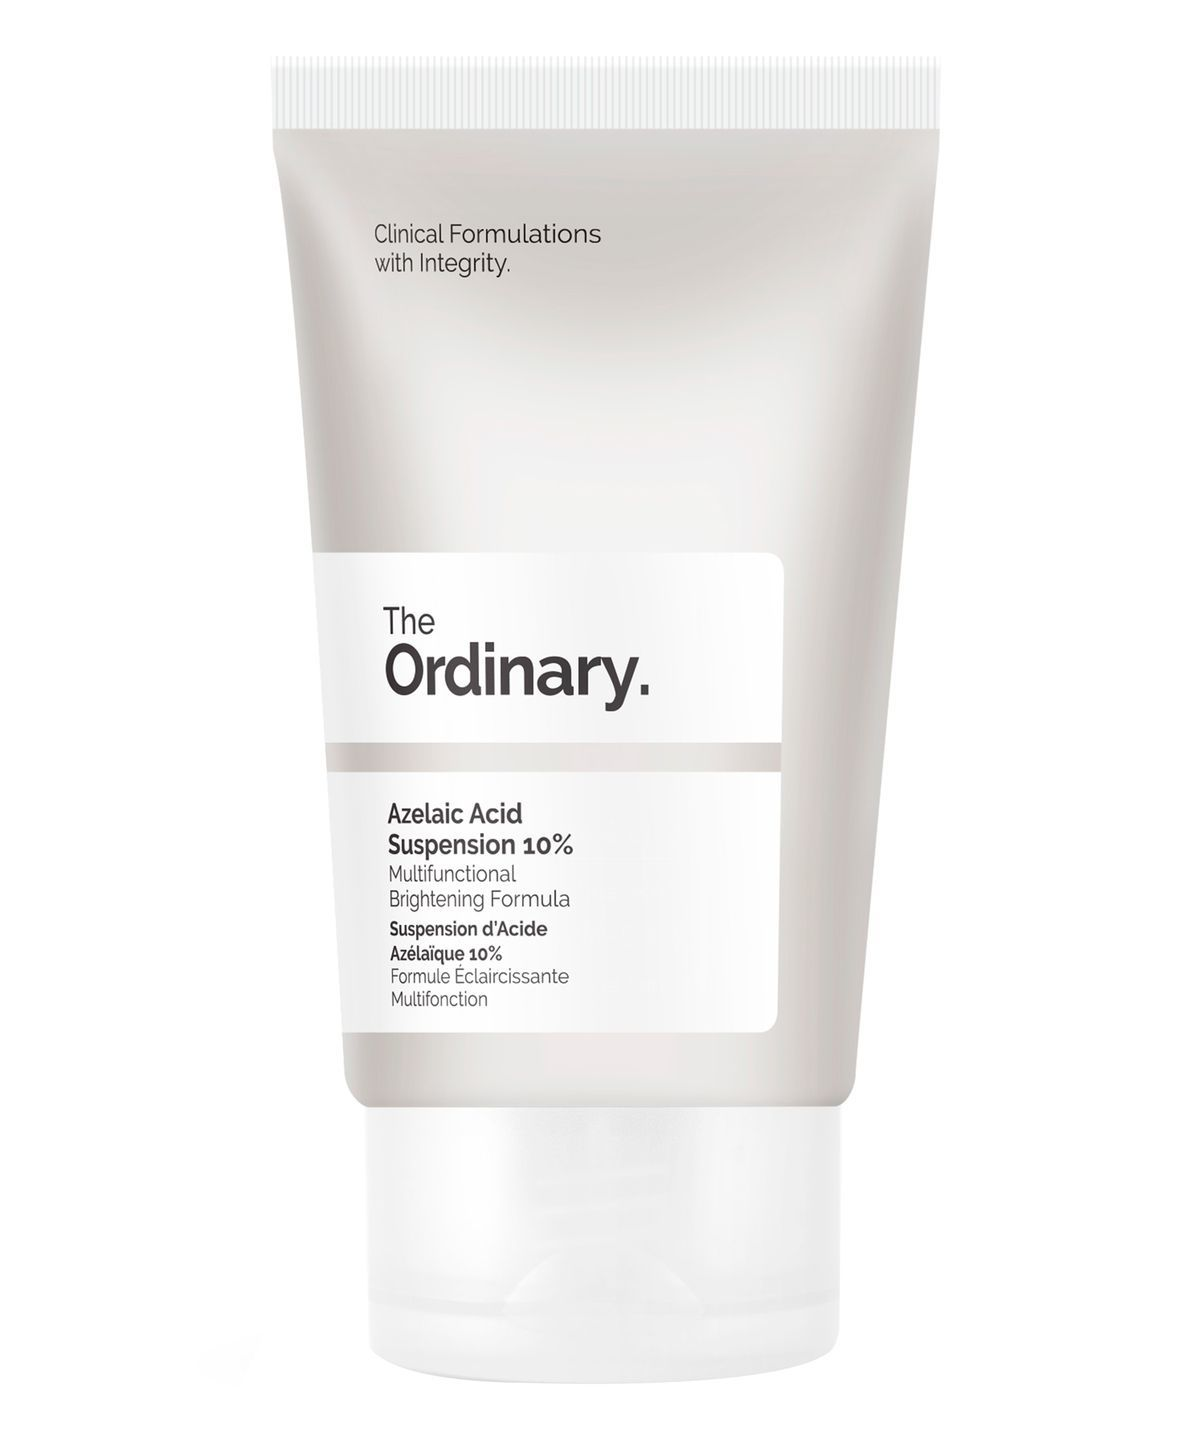 The Ordinary Azelaic Acid Suspension 10% сыворотка для лица 30мл